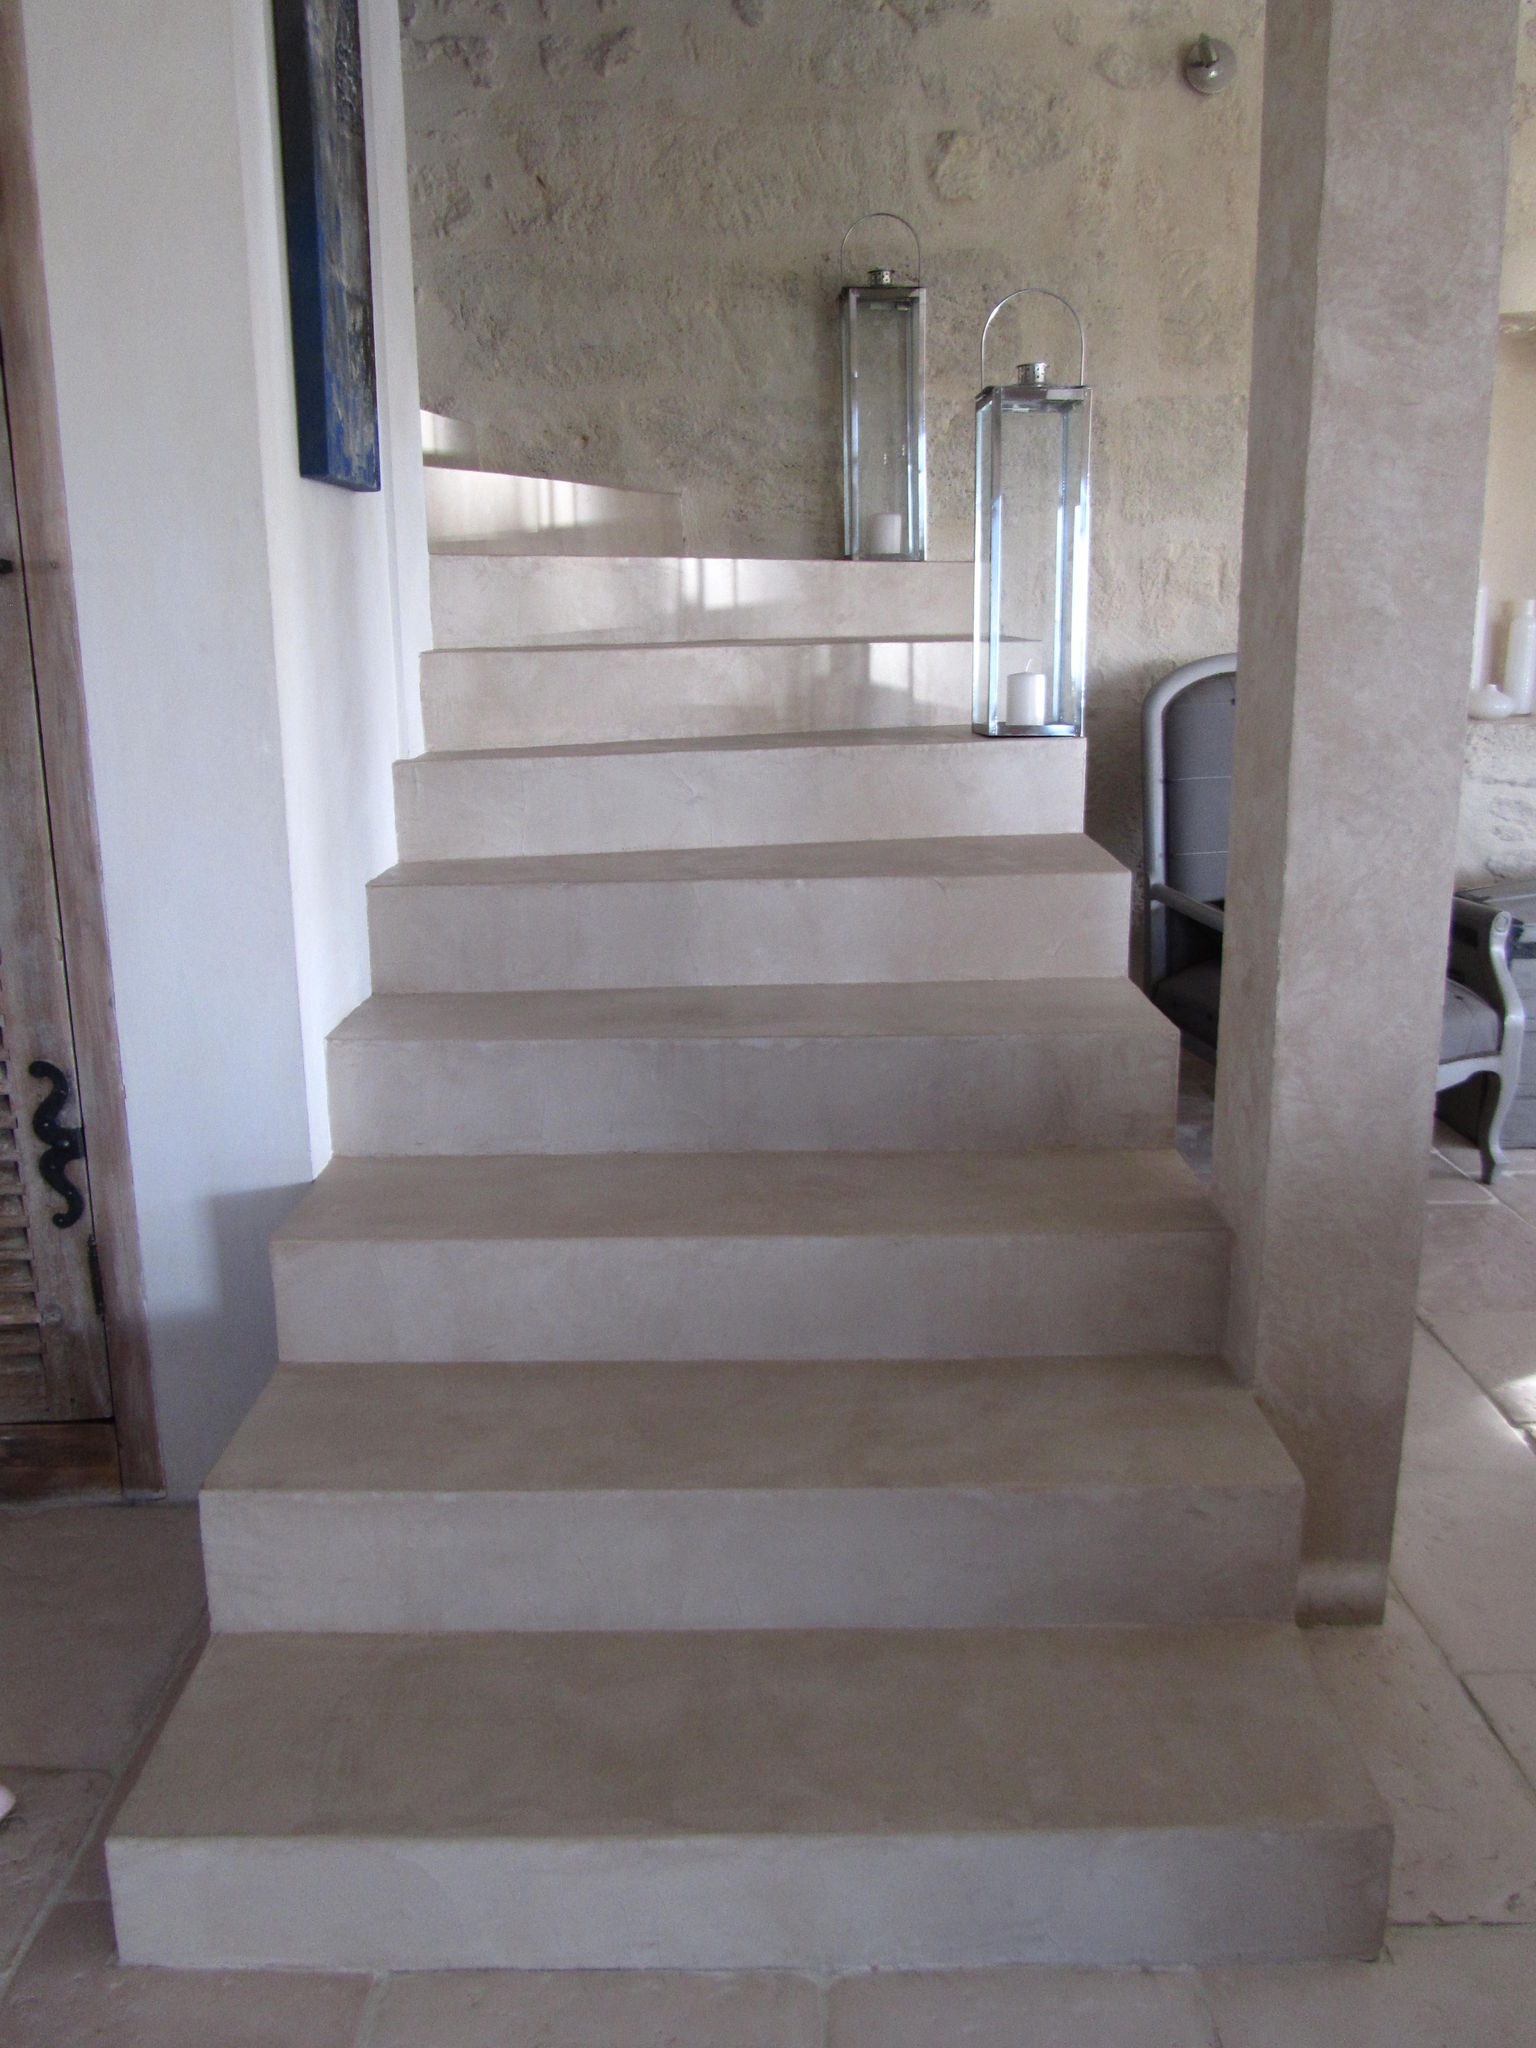 escalier en beton cire couleur pierre photo de beton. Black Bedroom Furniture Sets. Home Design Ideas